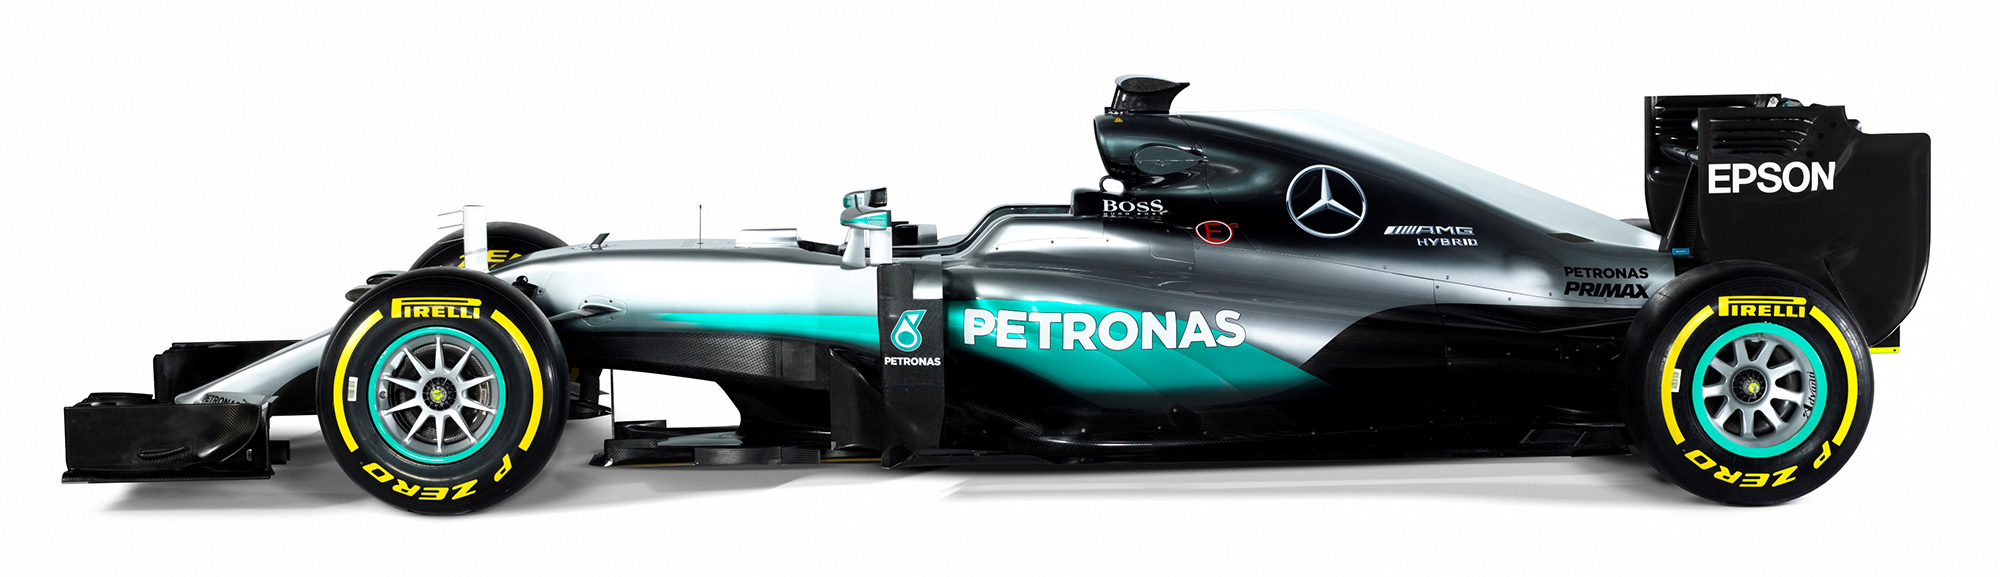 mercedes f1 store mercedes drivers hamilton rosberg. Black Bedroom Furniture Sets. Home Design Ideas